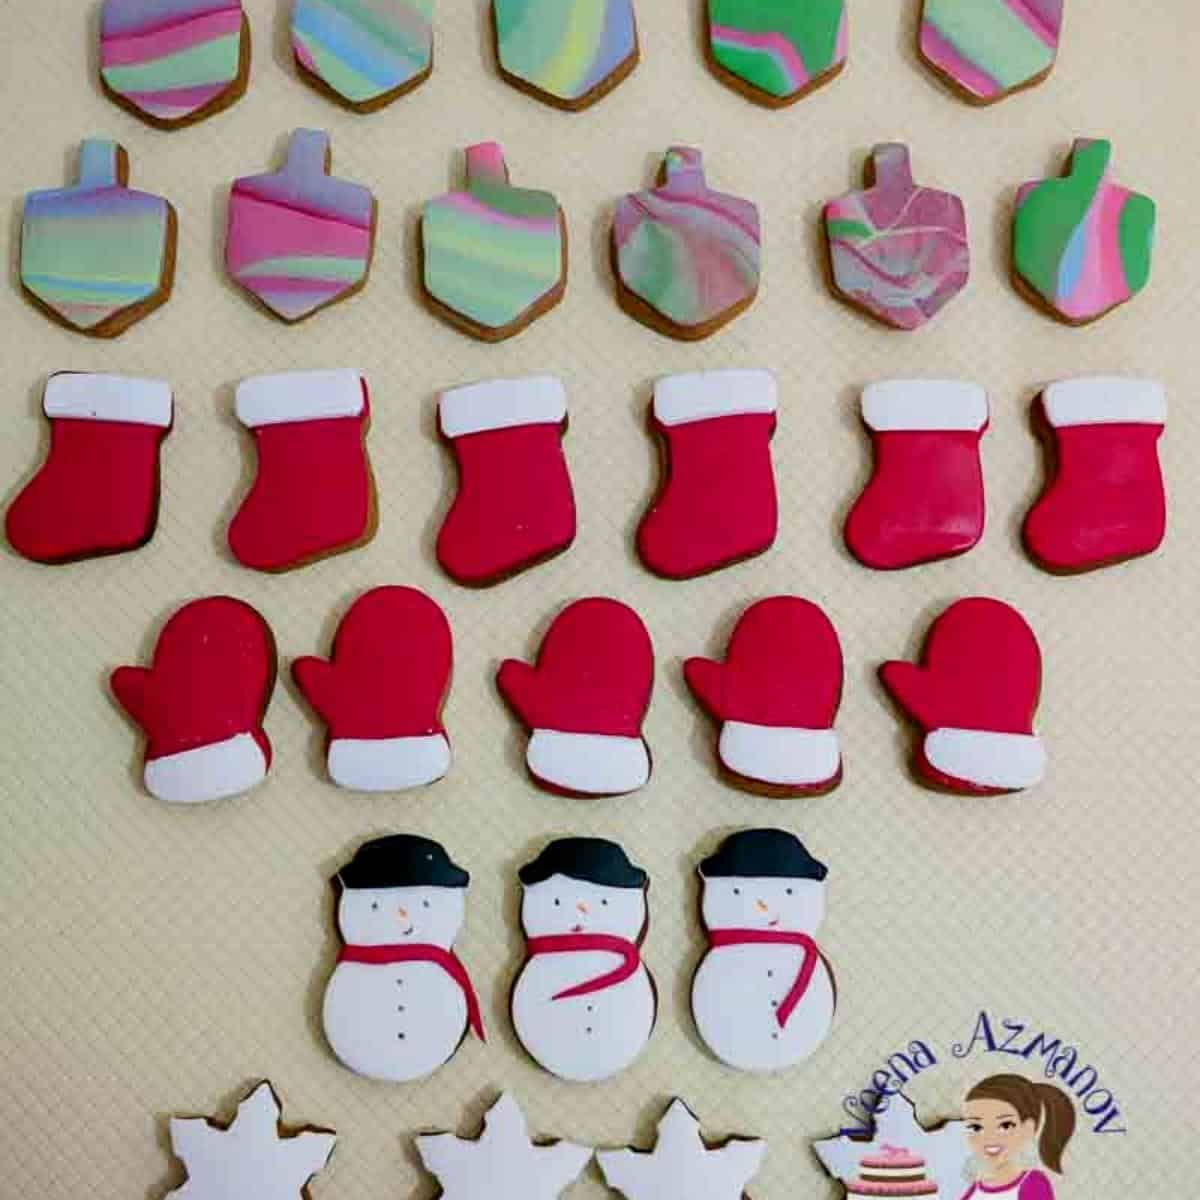 Decorated sugar cookies on a table